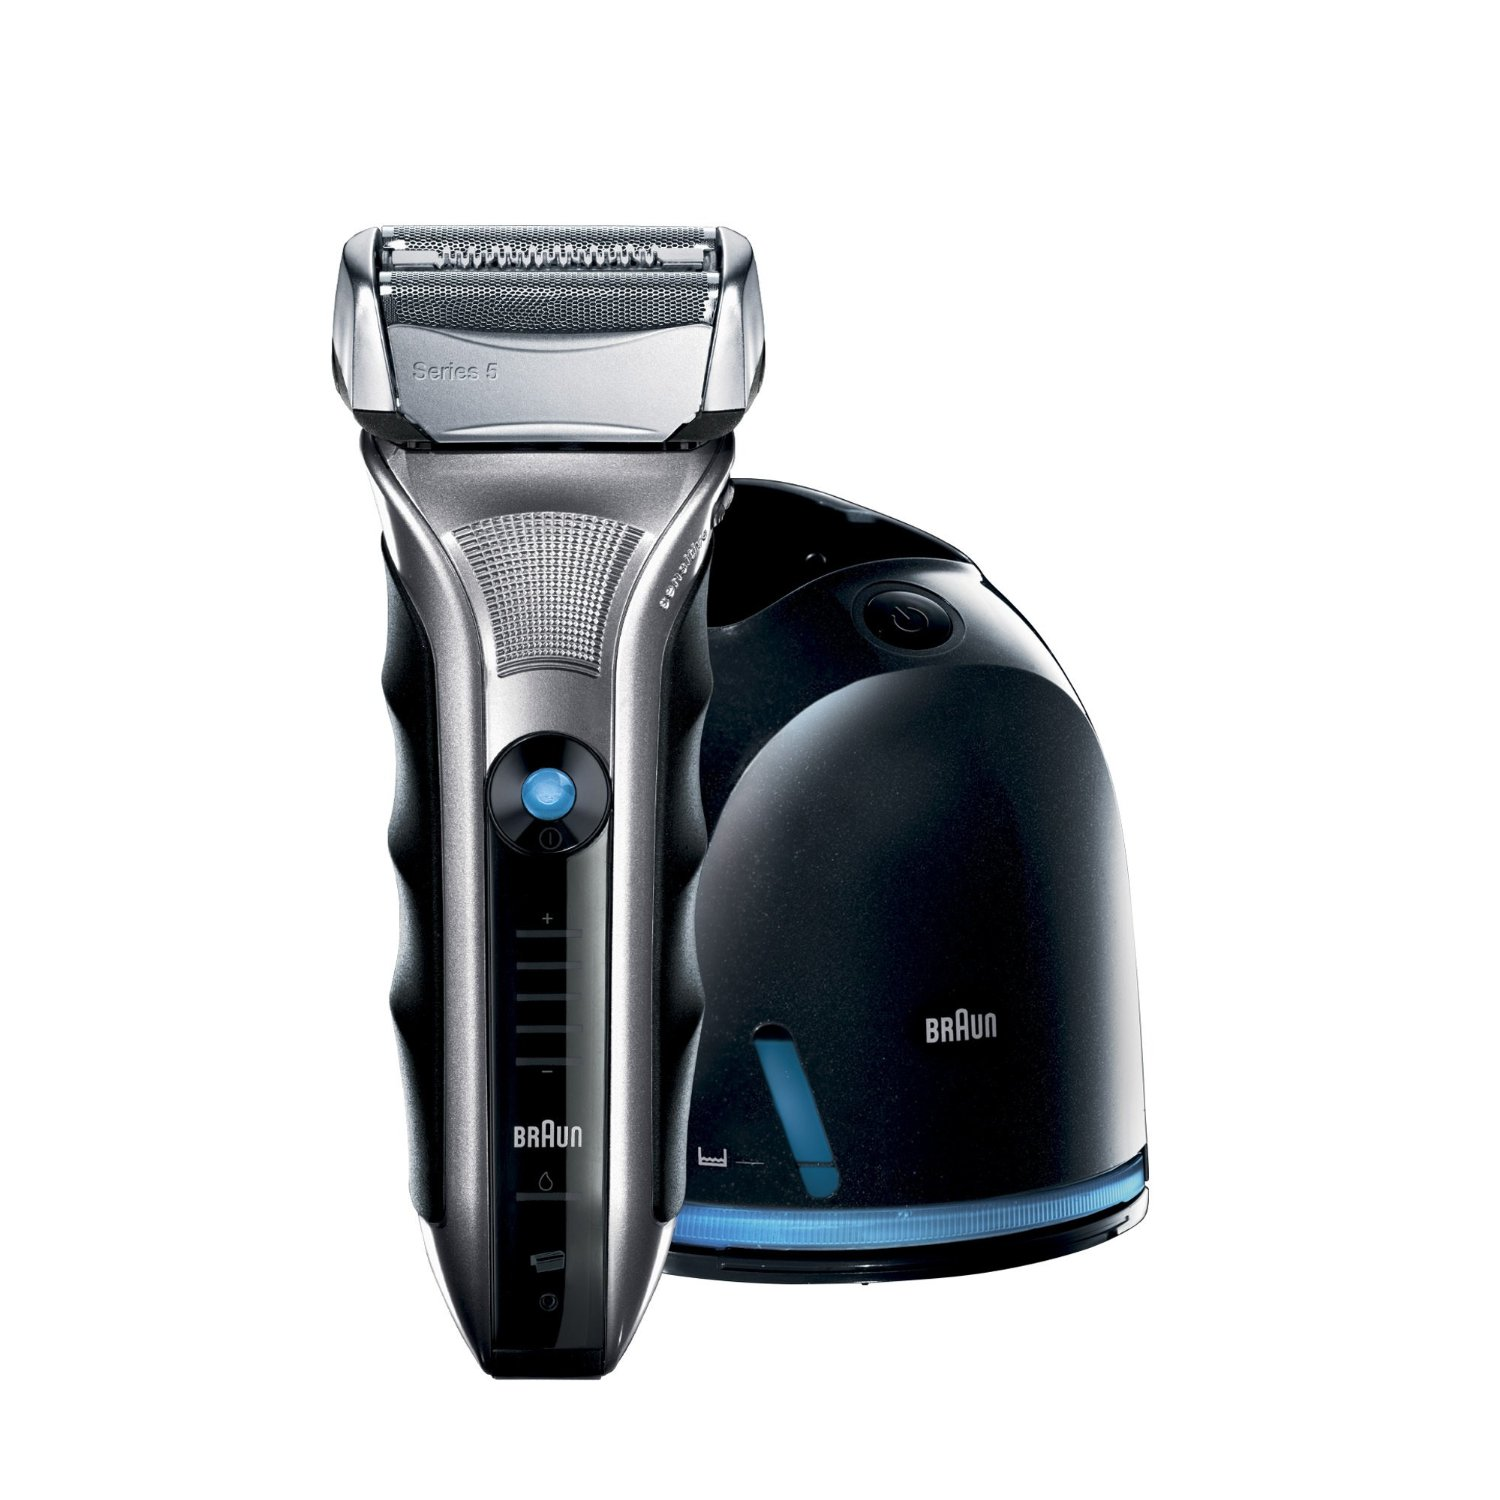 Braun 590cc Electric Razor Review